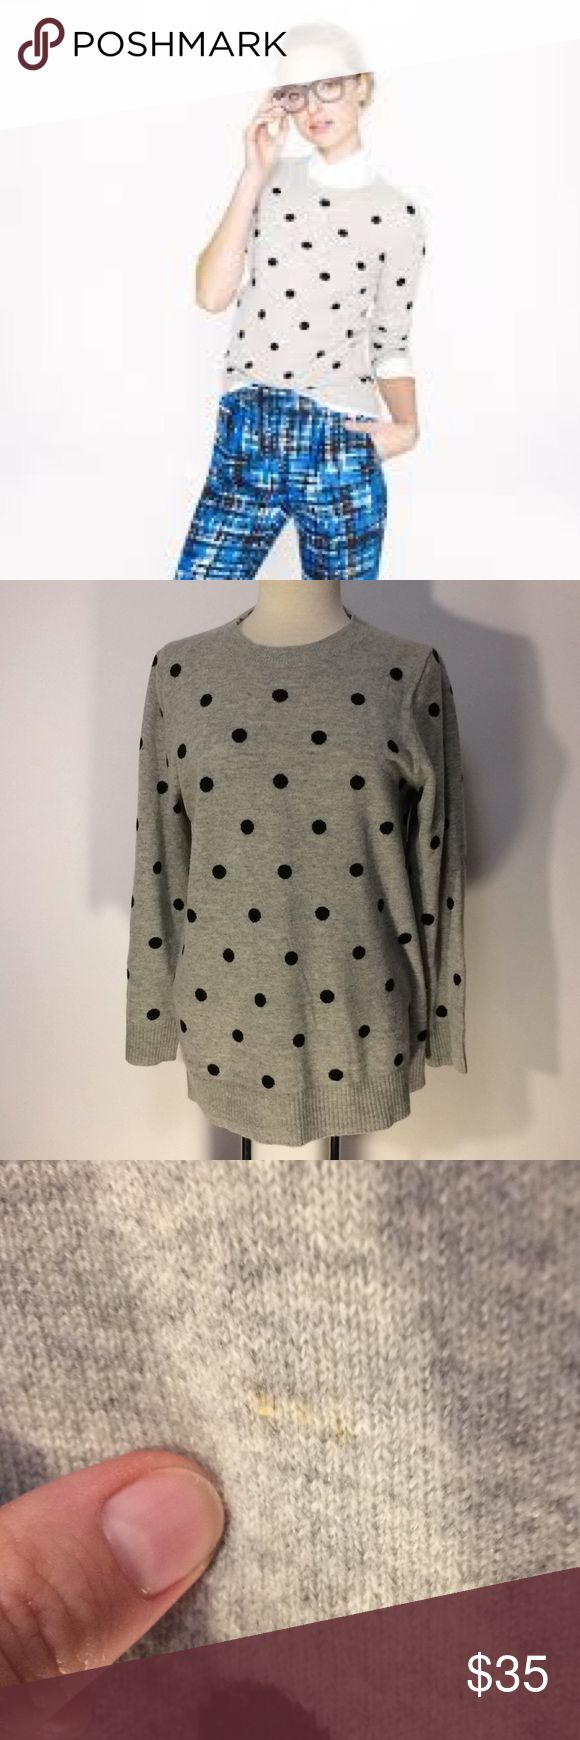 J. Crew Polka Dot Cashmere Sweater Sz L J. Crew Gray with black Polka dots Italian Cashmere Sweater Sz L. Has buttons at the back of neck. Has one small spot in front near the bottom of Sweater - should come out with dry cleaning - otherwise in excellent condition. J. Crew Sweaters